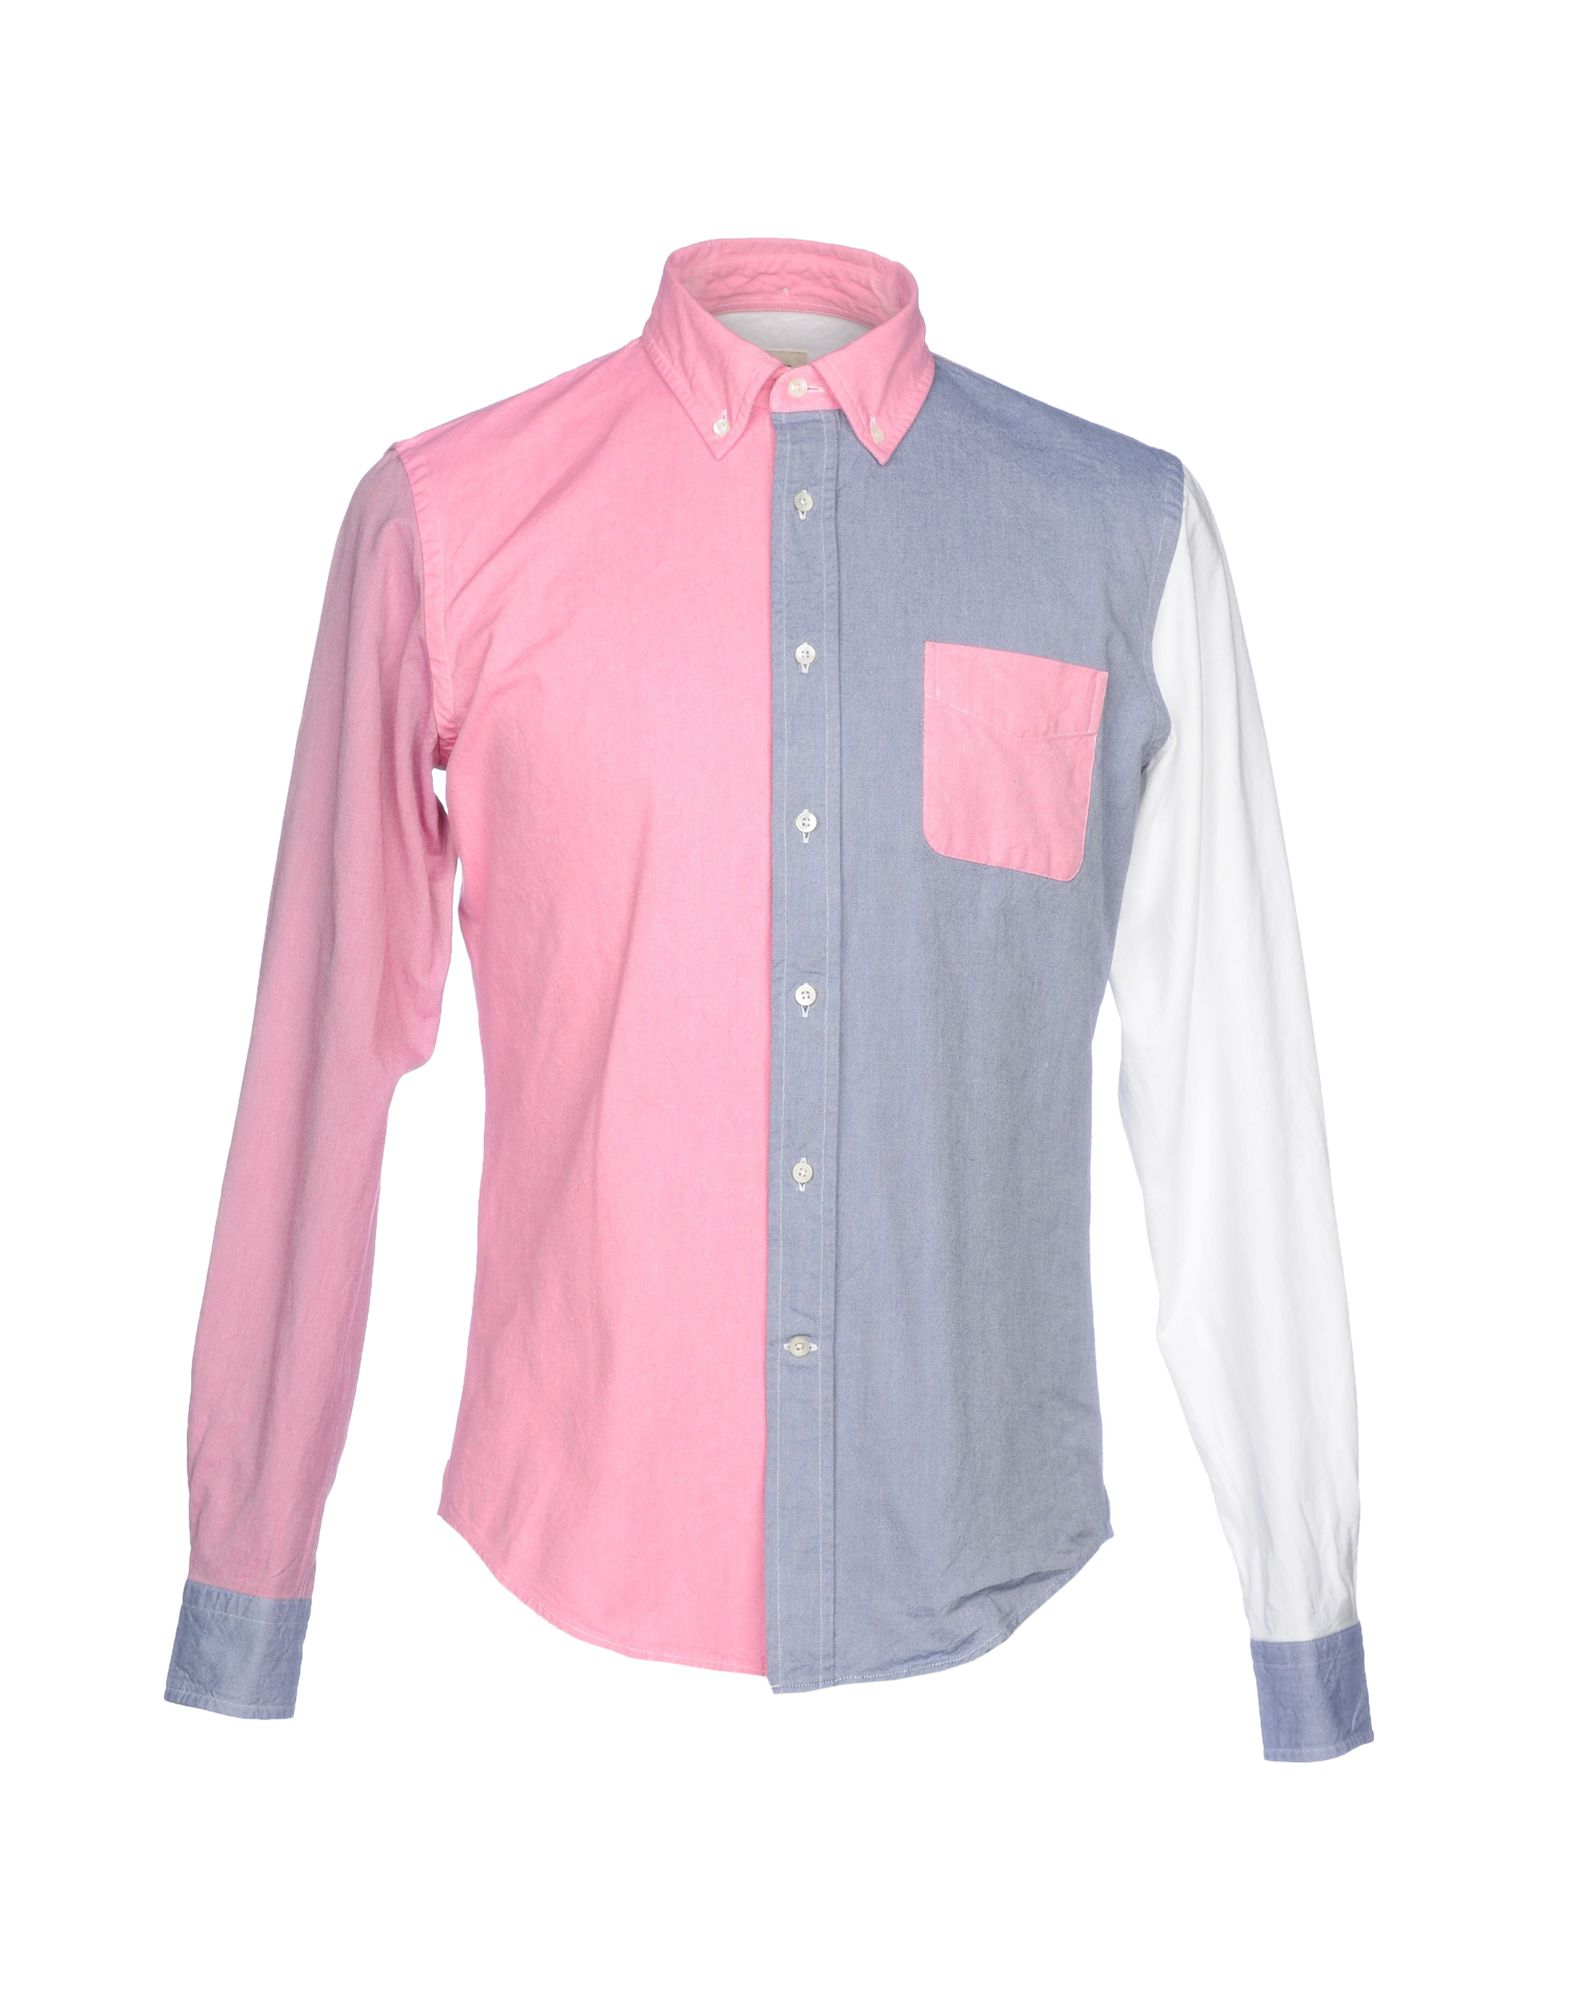 WOOSTER + LARDINI Patterned Shirt in Pink